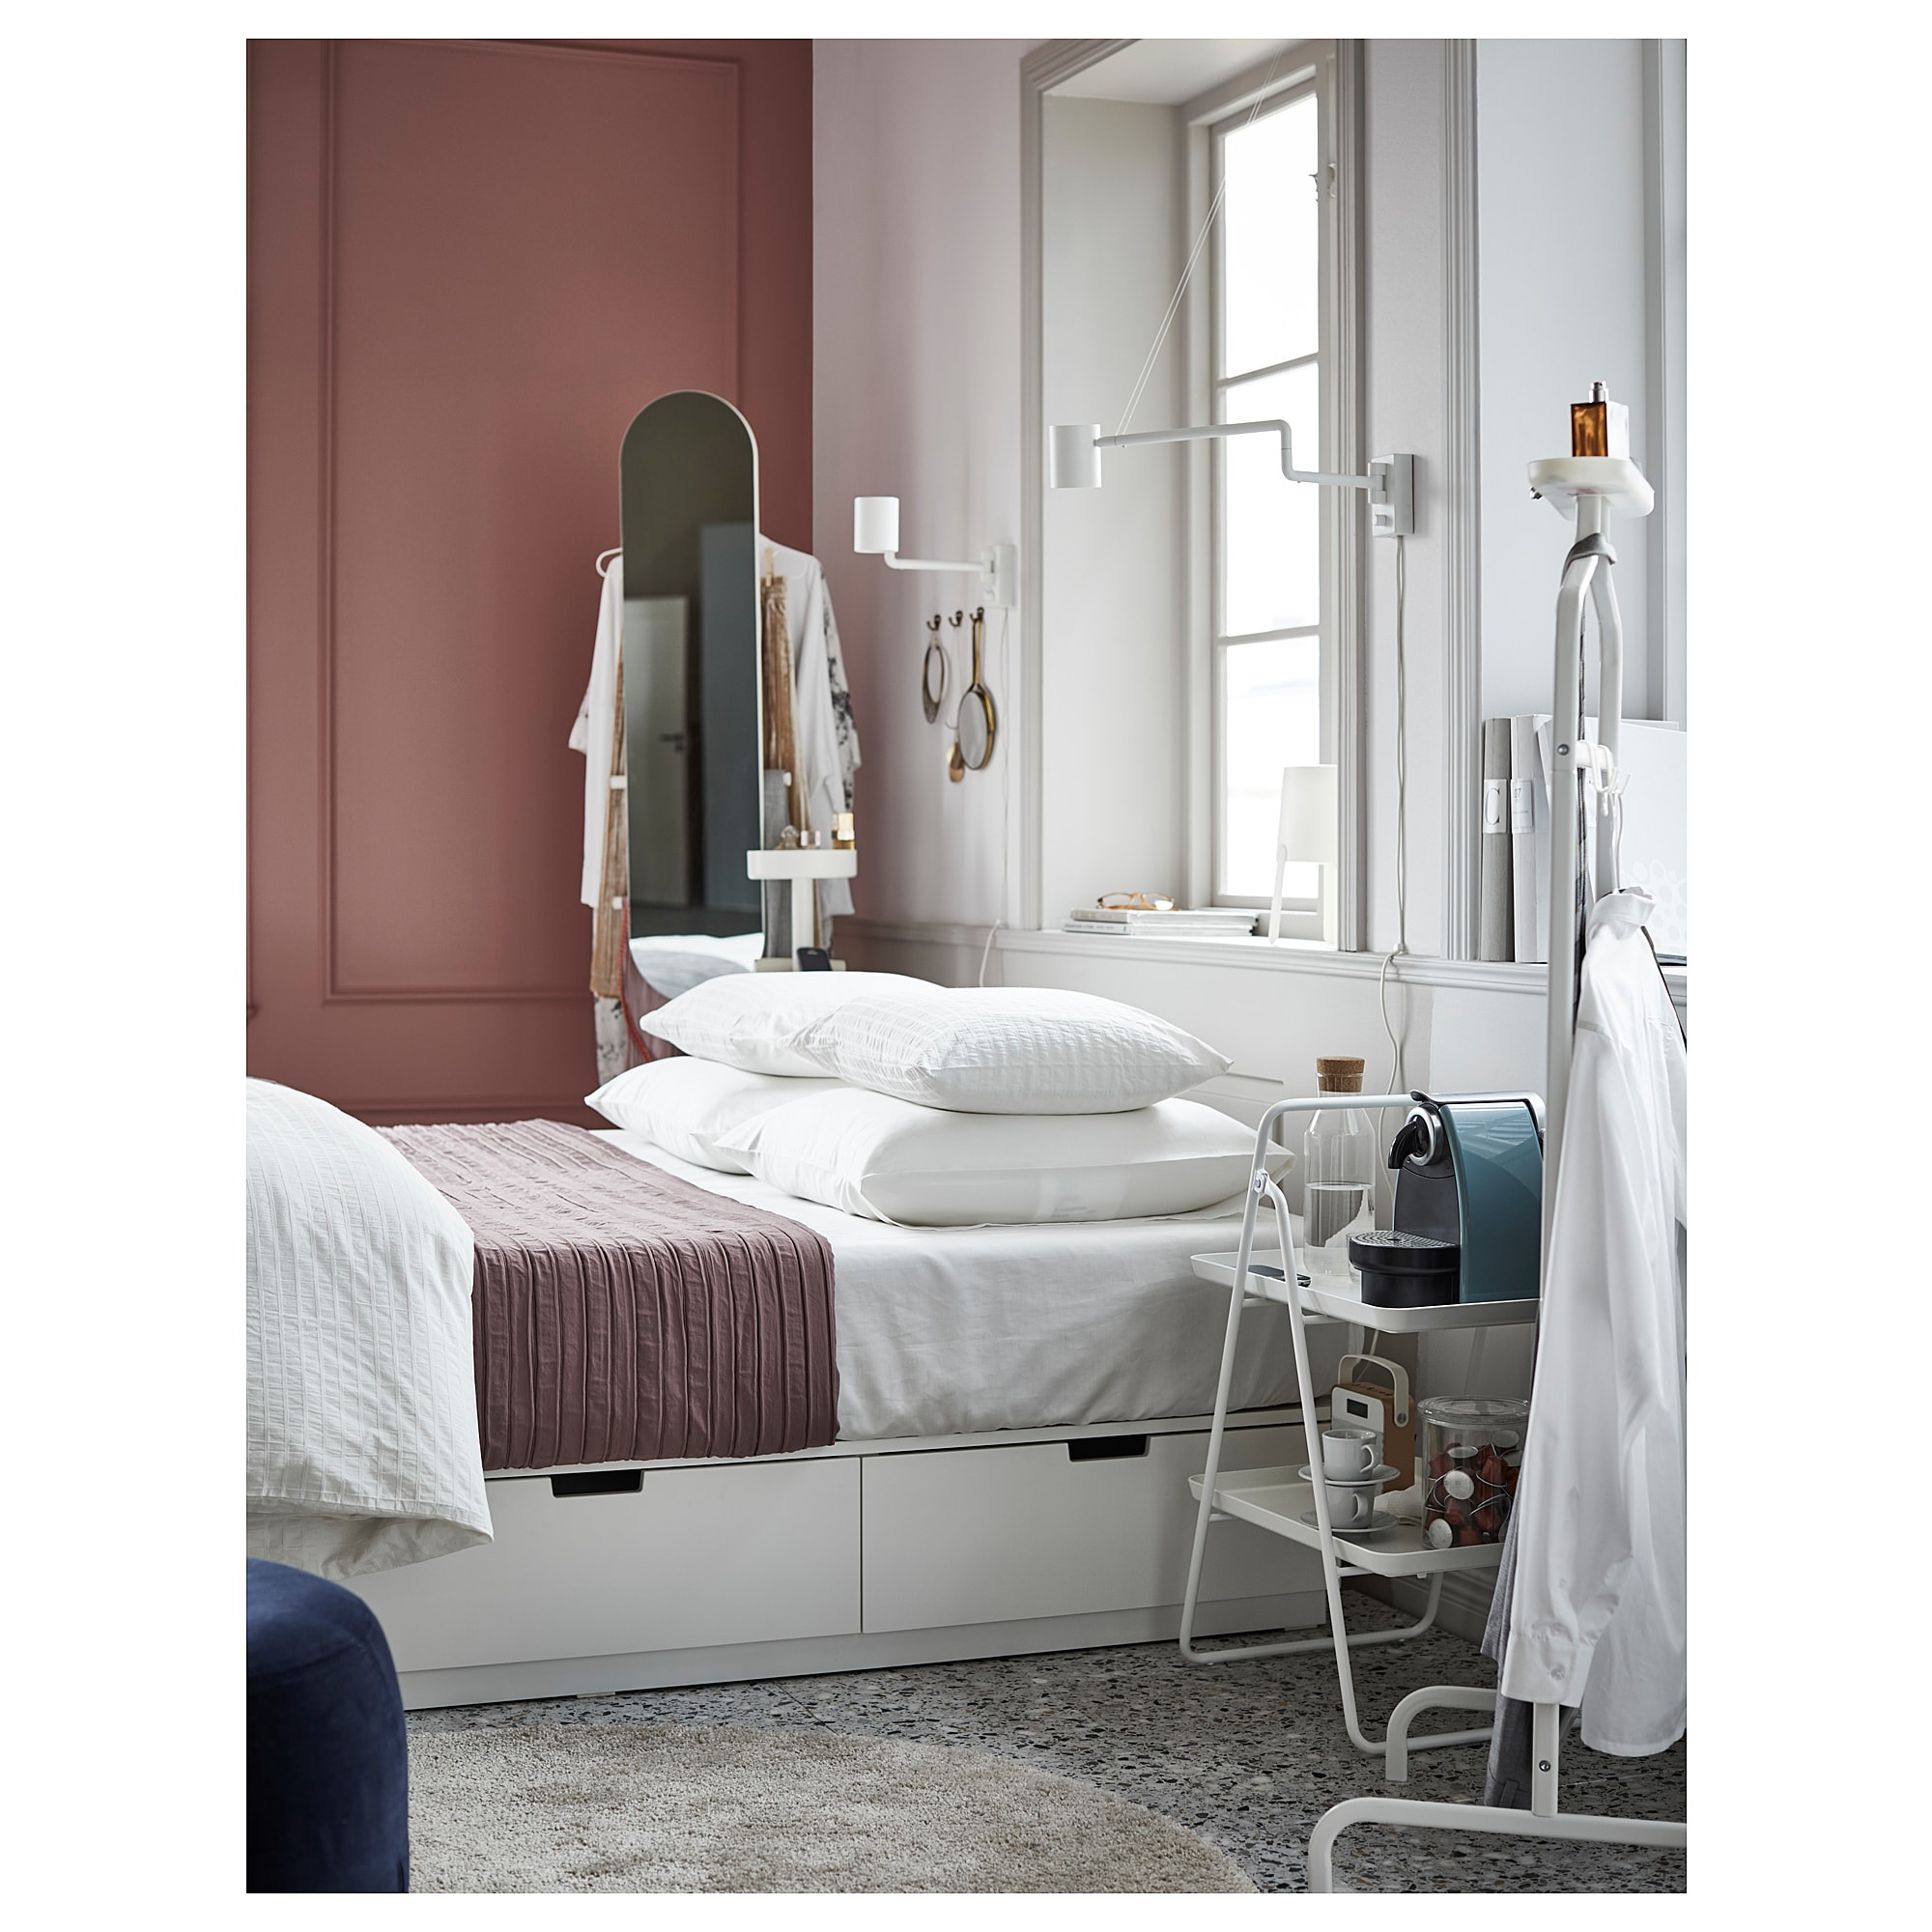 Ikea Möbel Nordli Ikea Nordli Bed Frame With Storage White In 2019 Home Bed